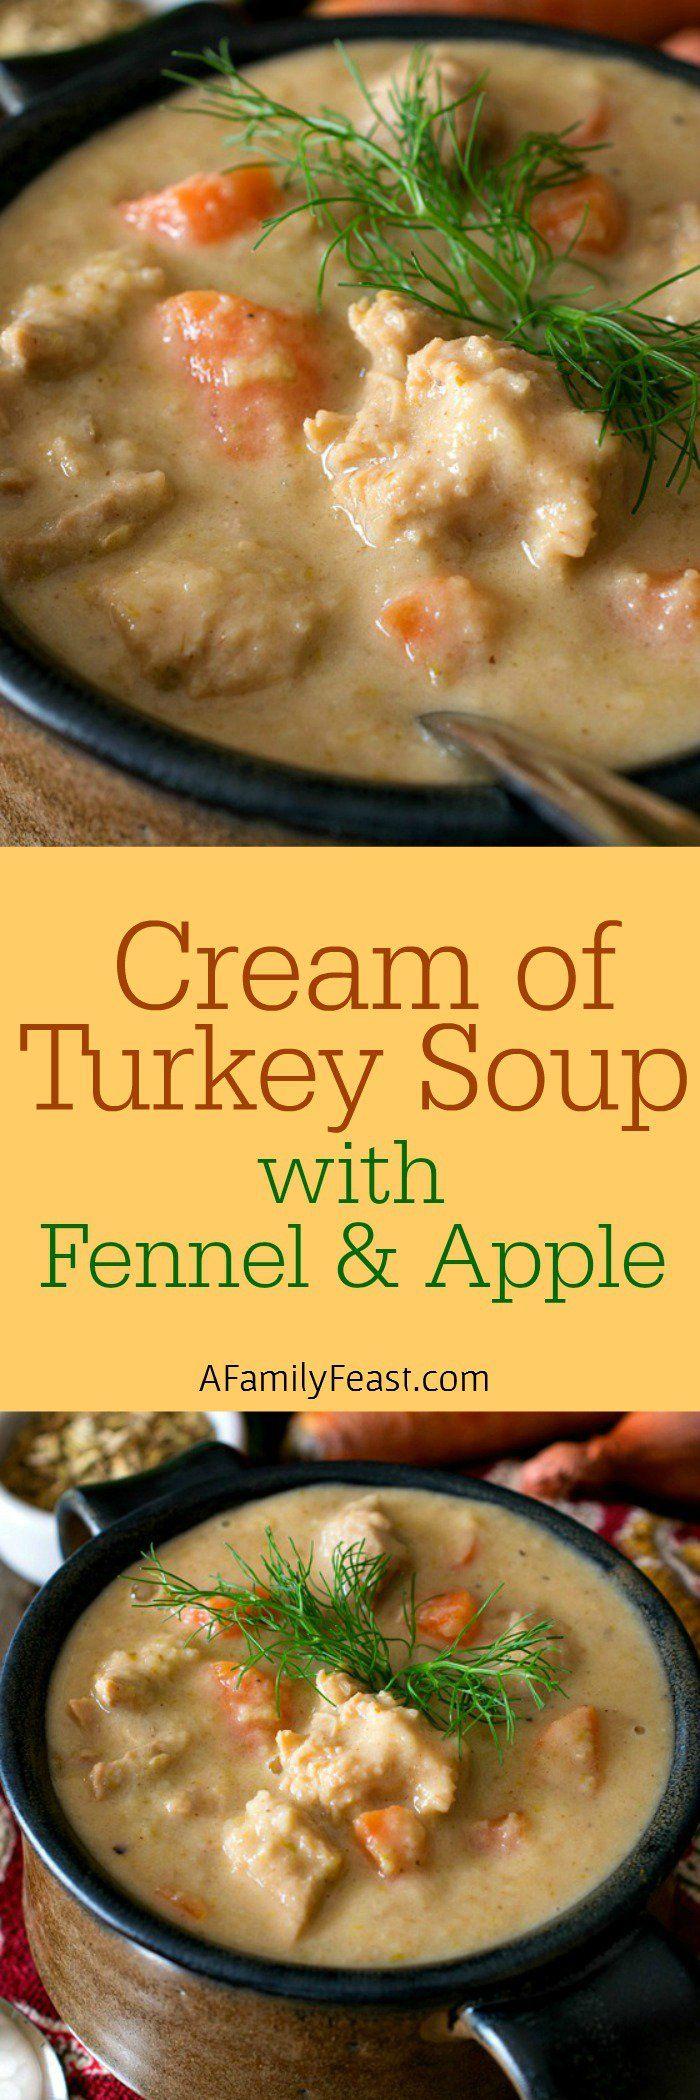 Soup with Fennel and Apple - Not your average cream of turkey soup ...